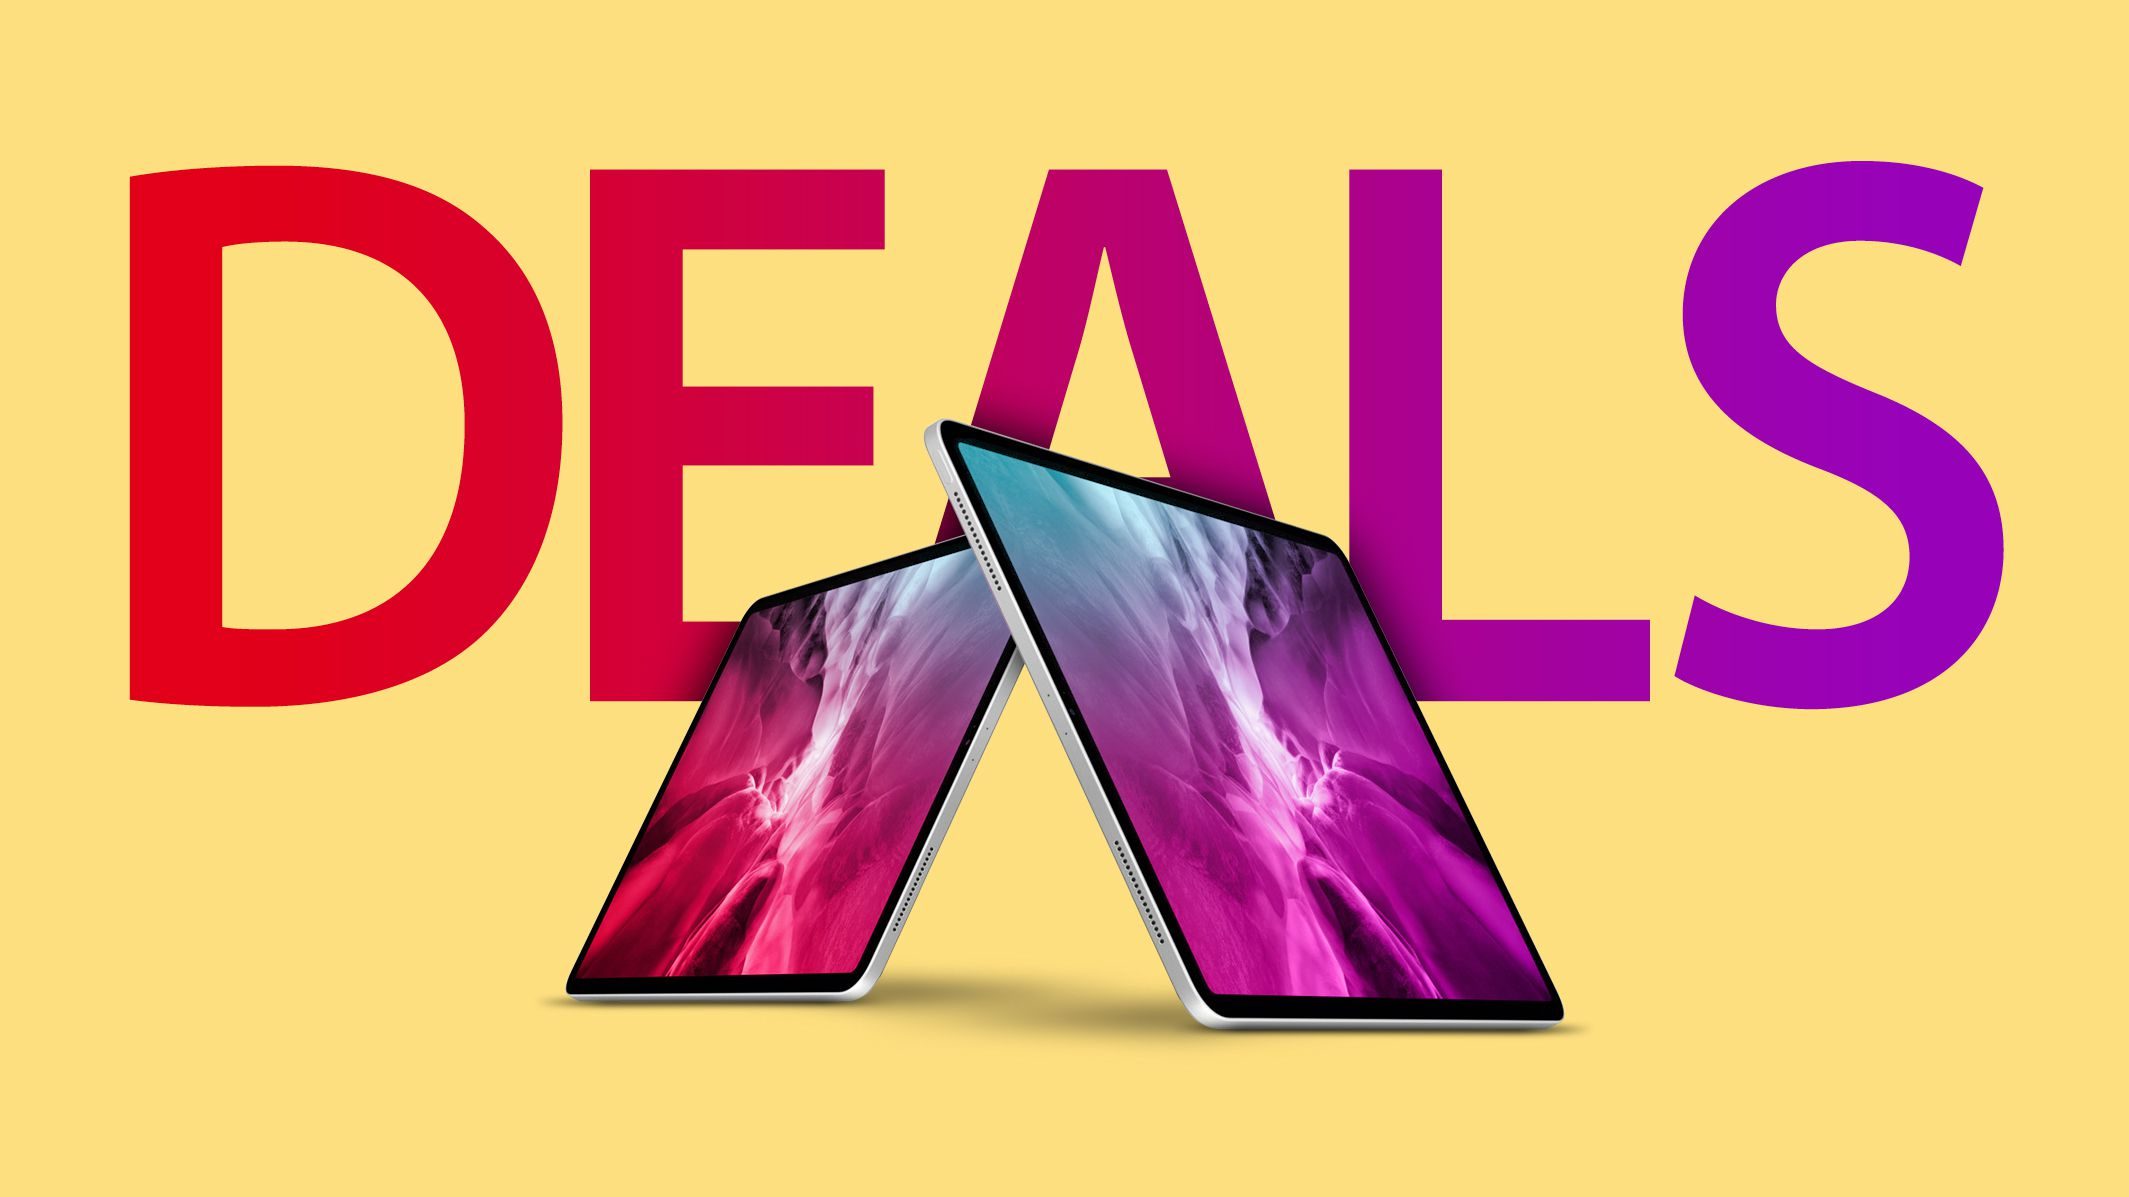 Deals: 2020 iPad Pro Models Further Discounted to Record Low Prices on Amazon (Up to $150 Off) - MacRumors thumbnail